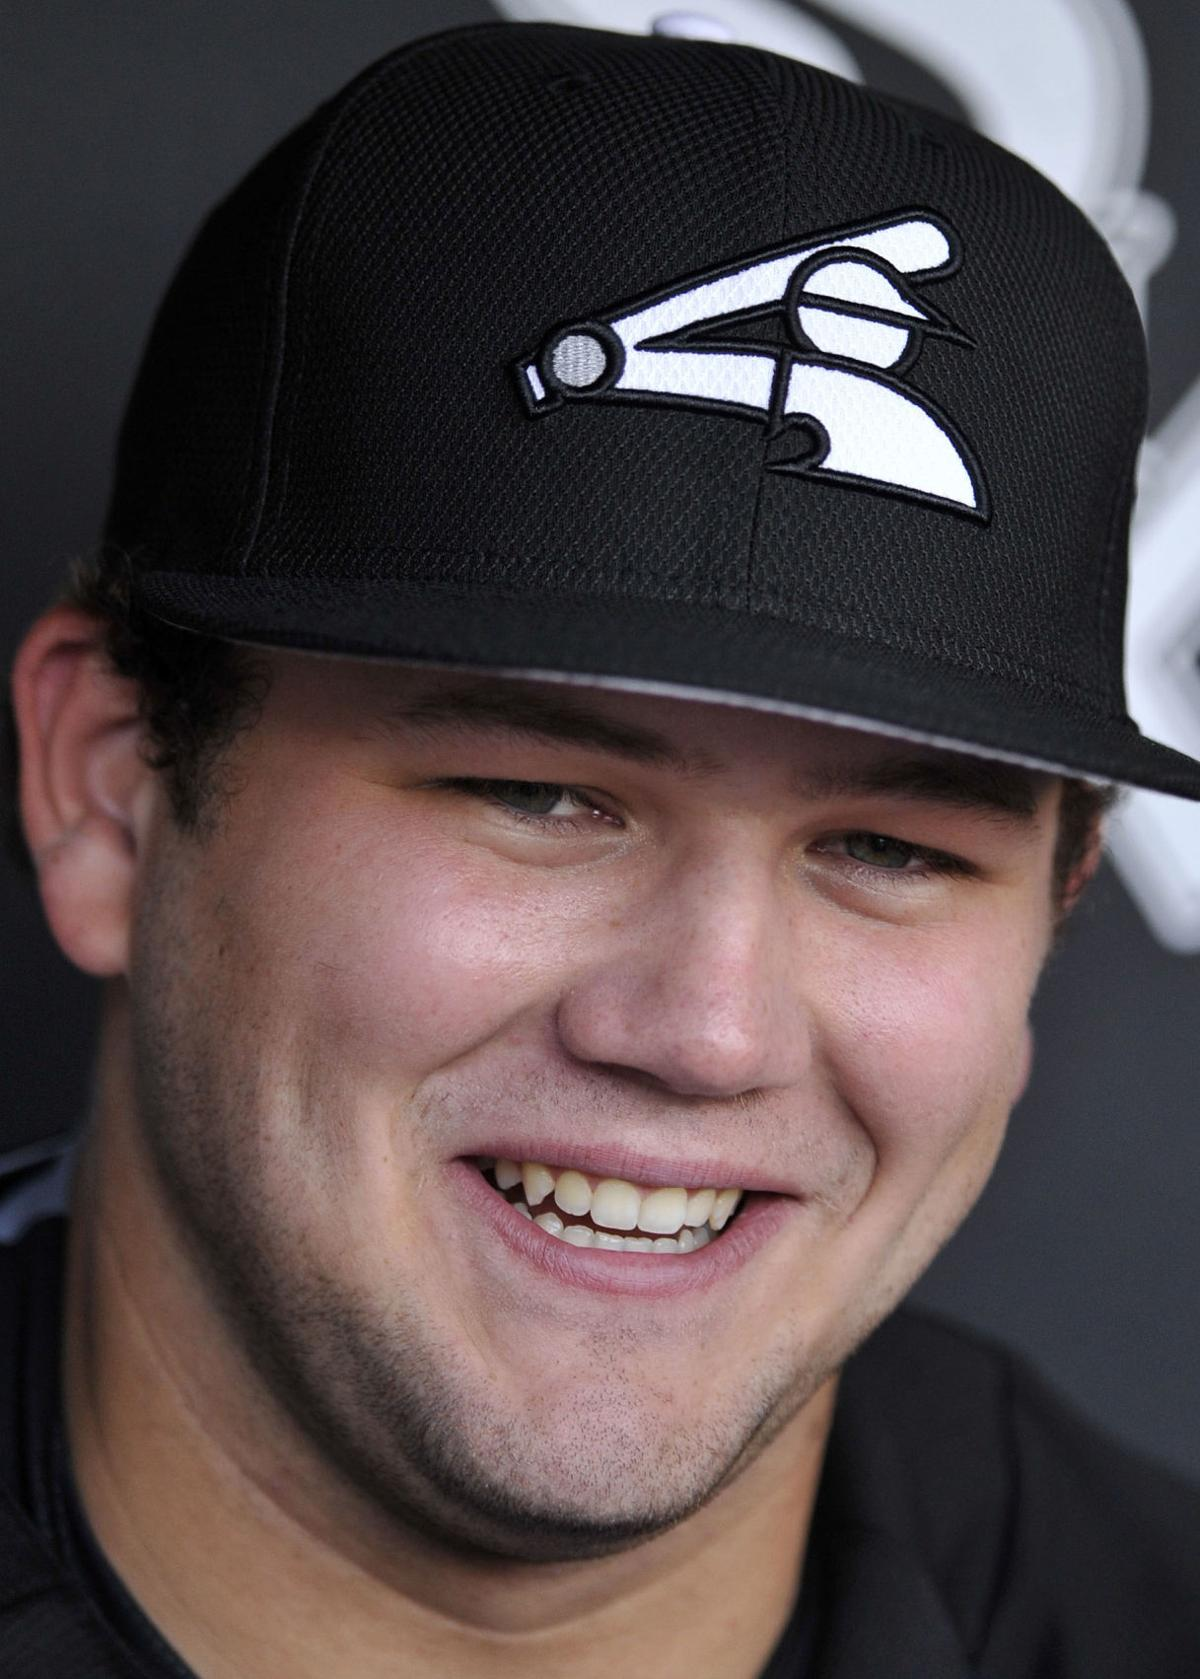 Jake Burger, White Sox prospect